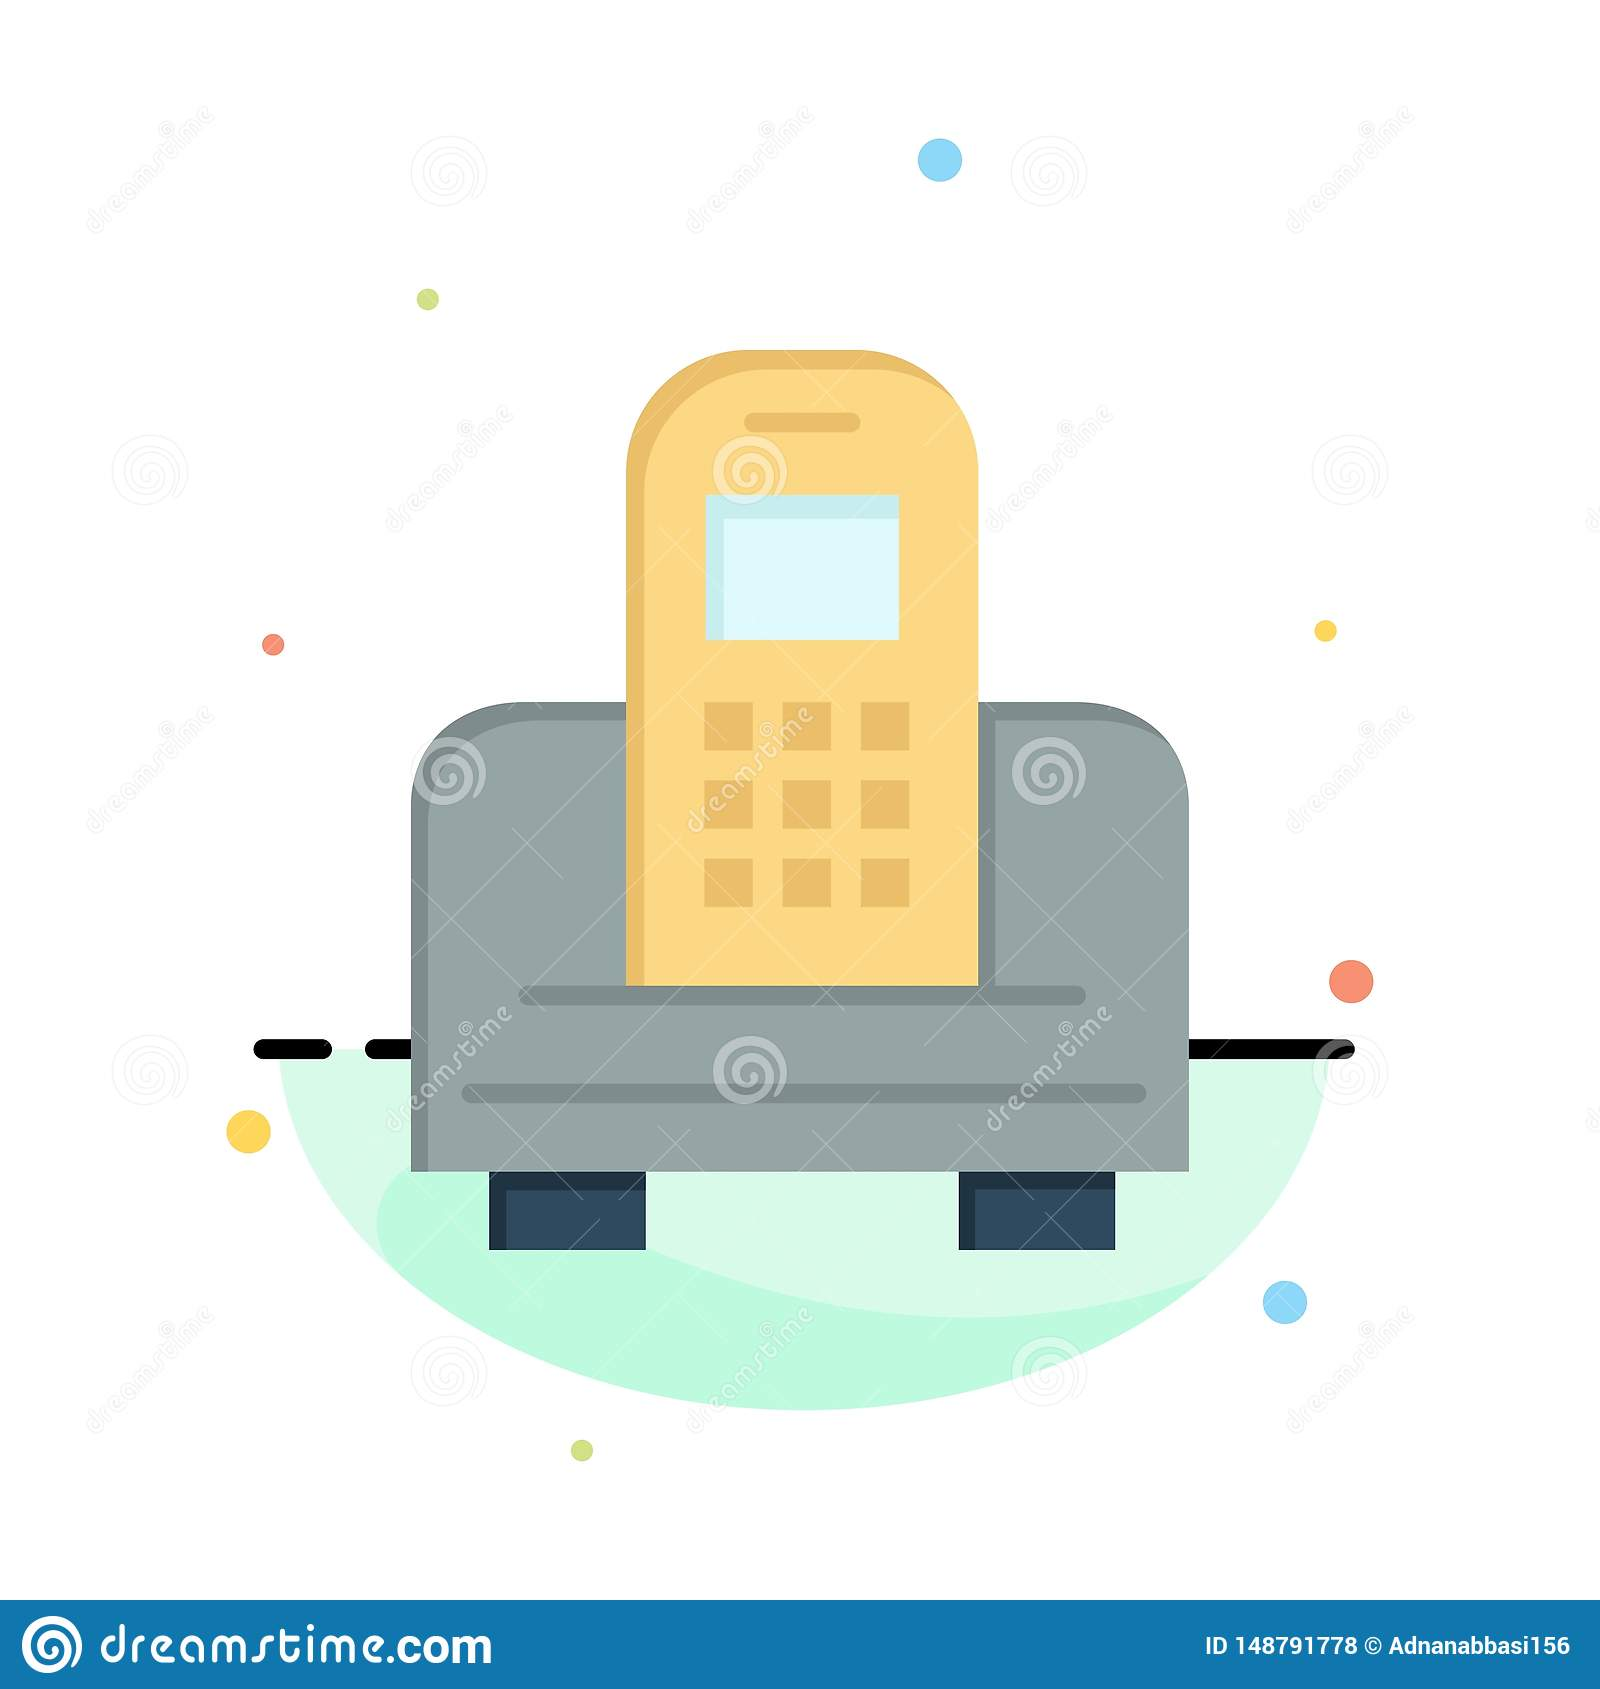 Device, Mobile, Cell, Hardware Abstract Flat Color Icon Template